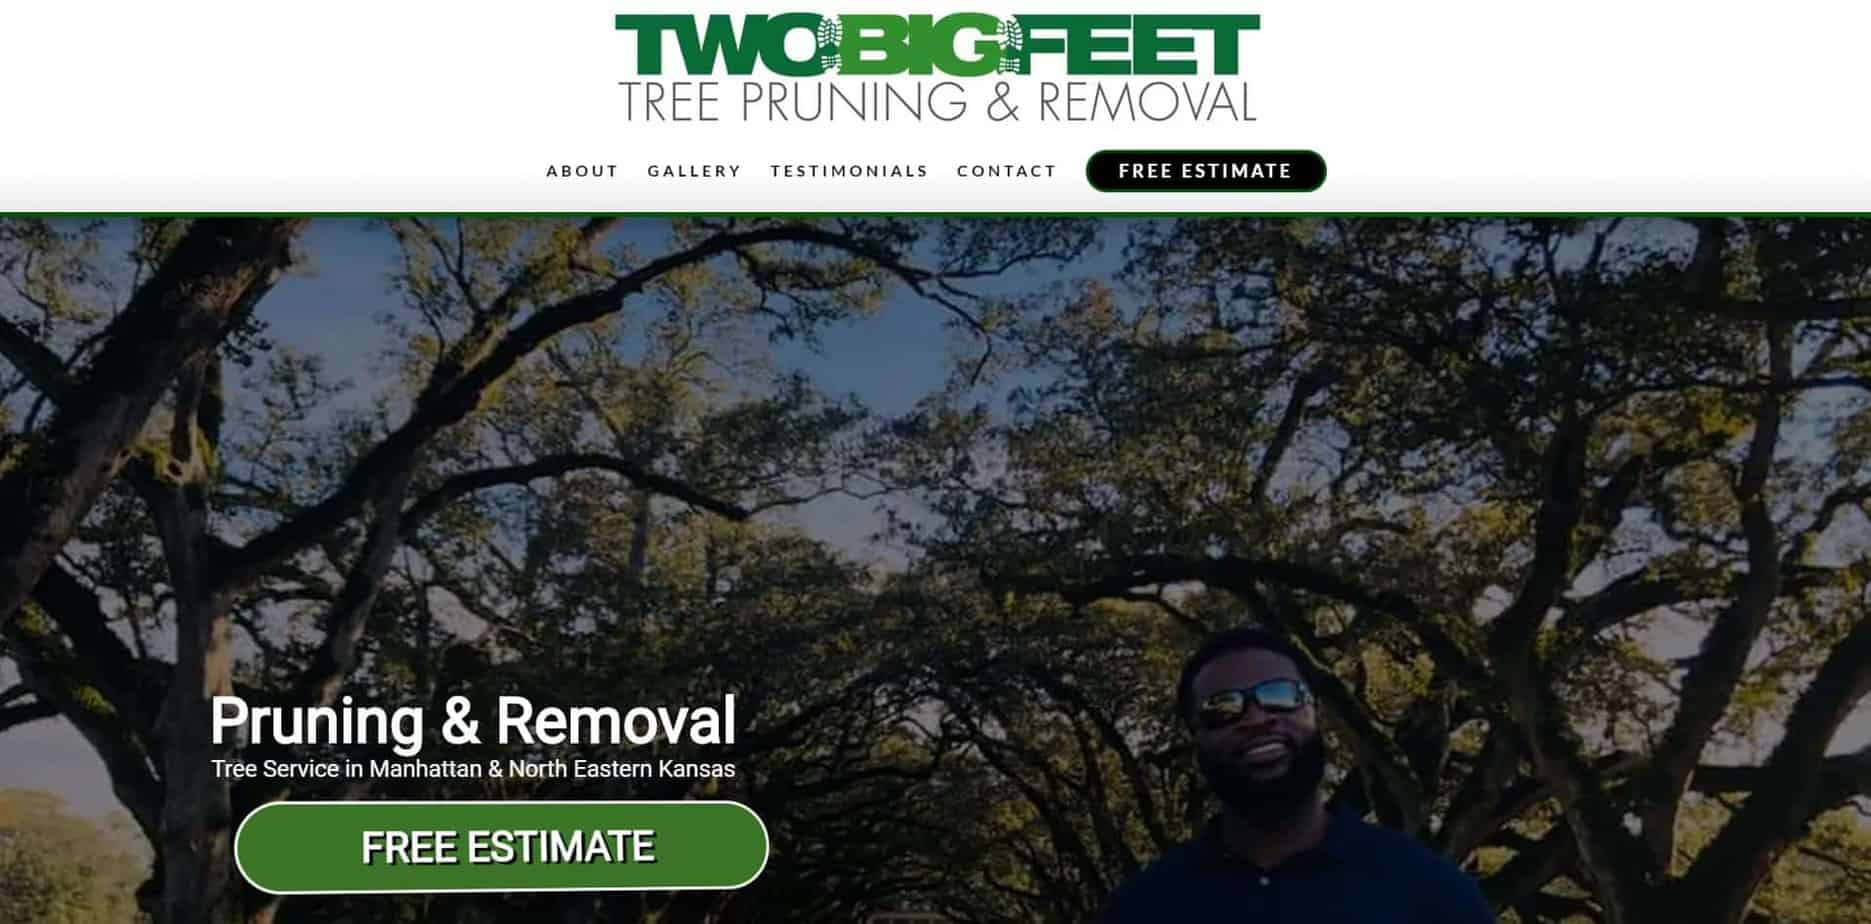 Two Big Feet Tree Pruning and Removal - Website Design